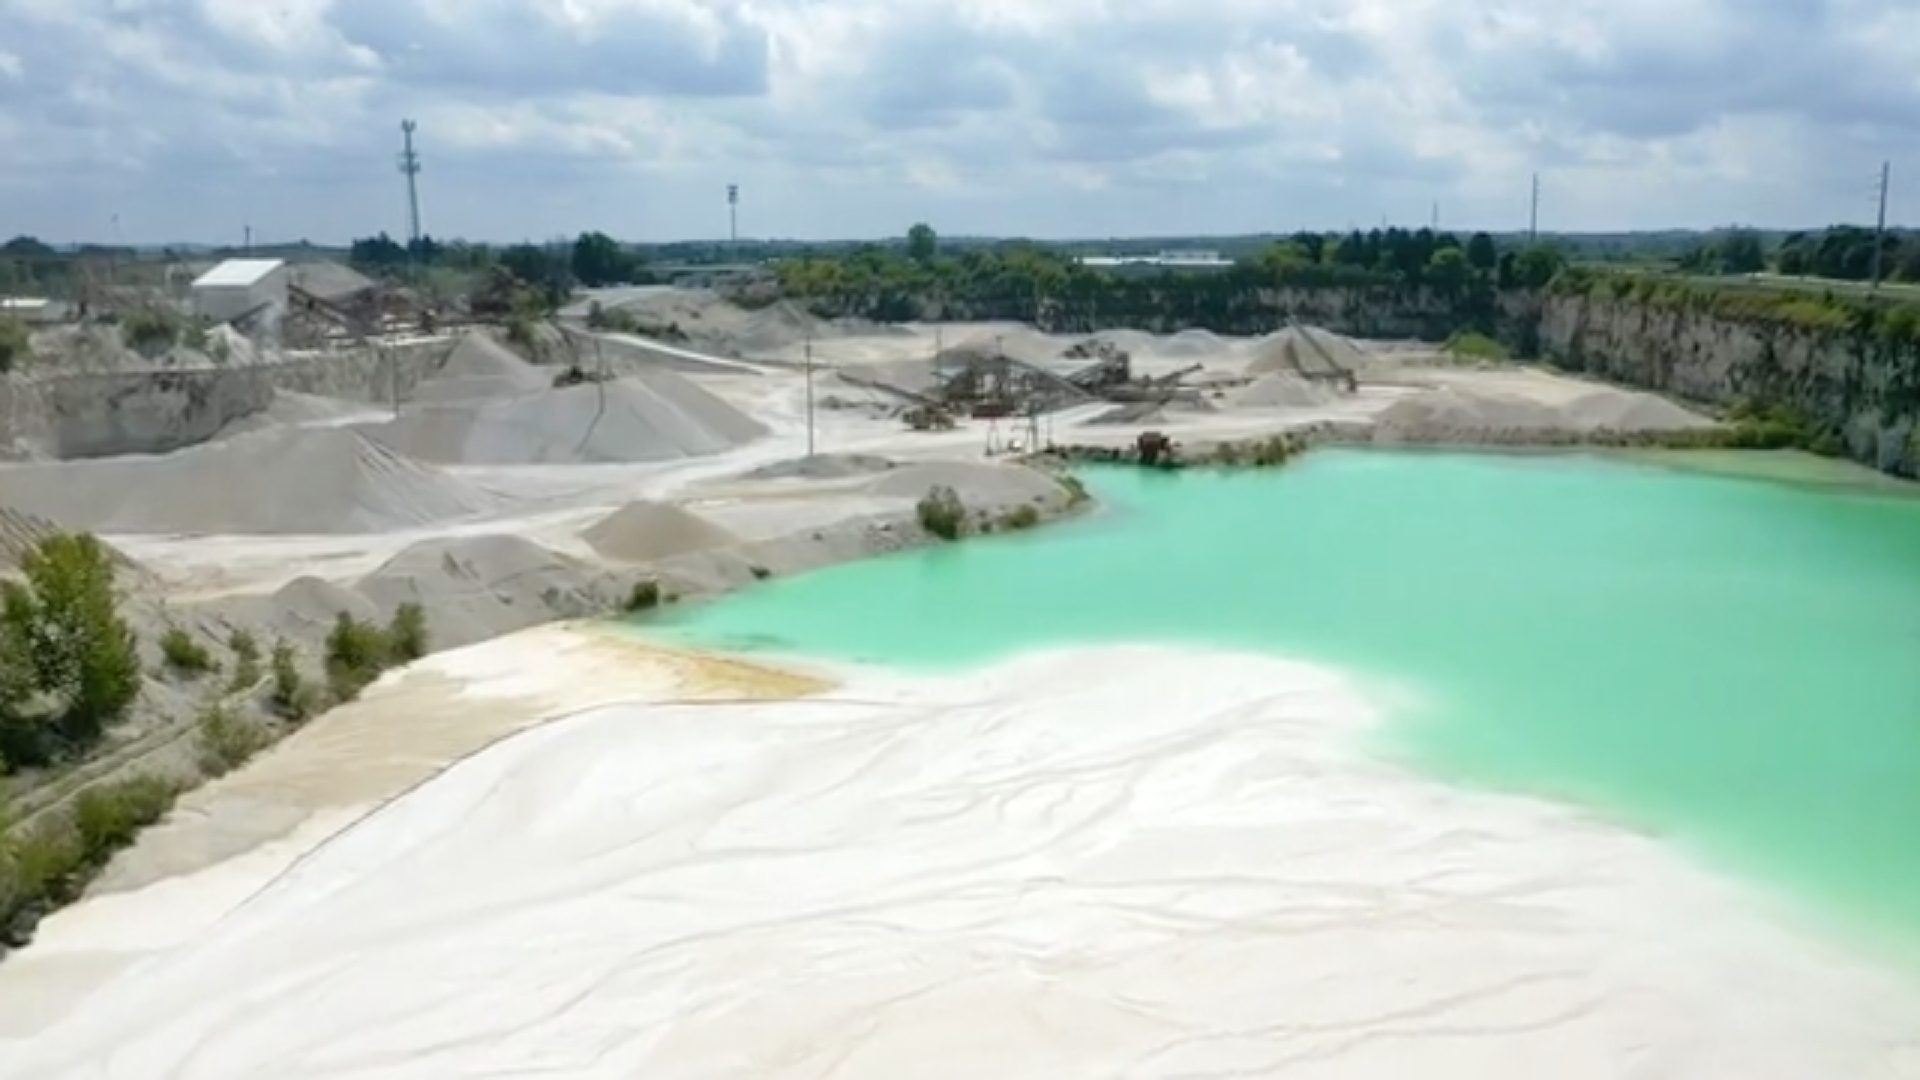 A drone photo of a limestone quarry showing the machines and ground stone in the distance and the settling pond in the foreground.